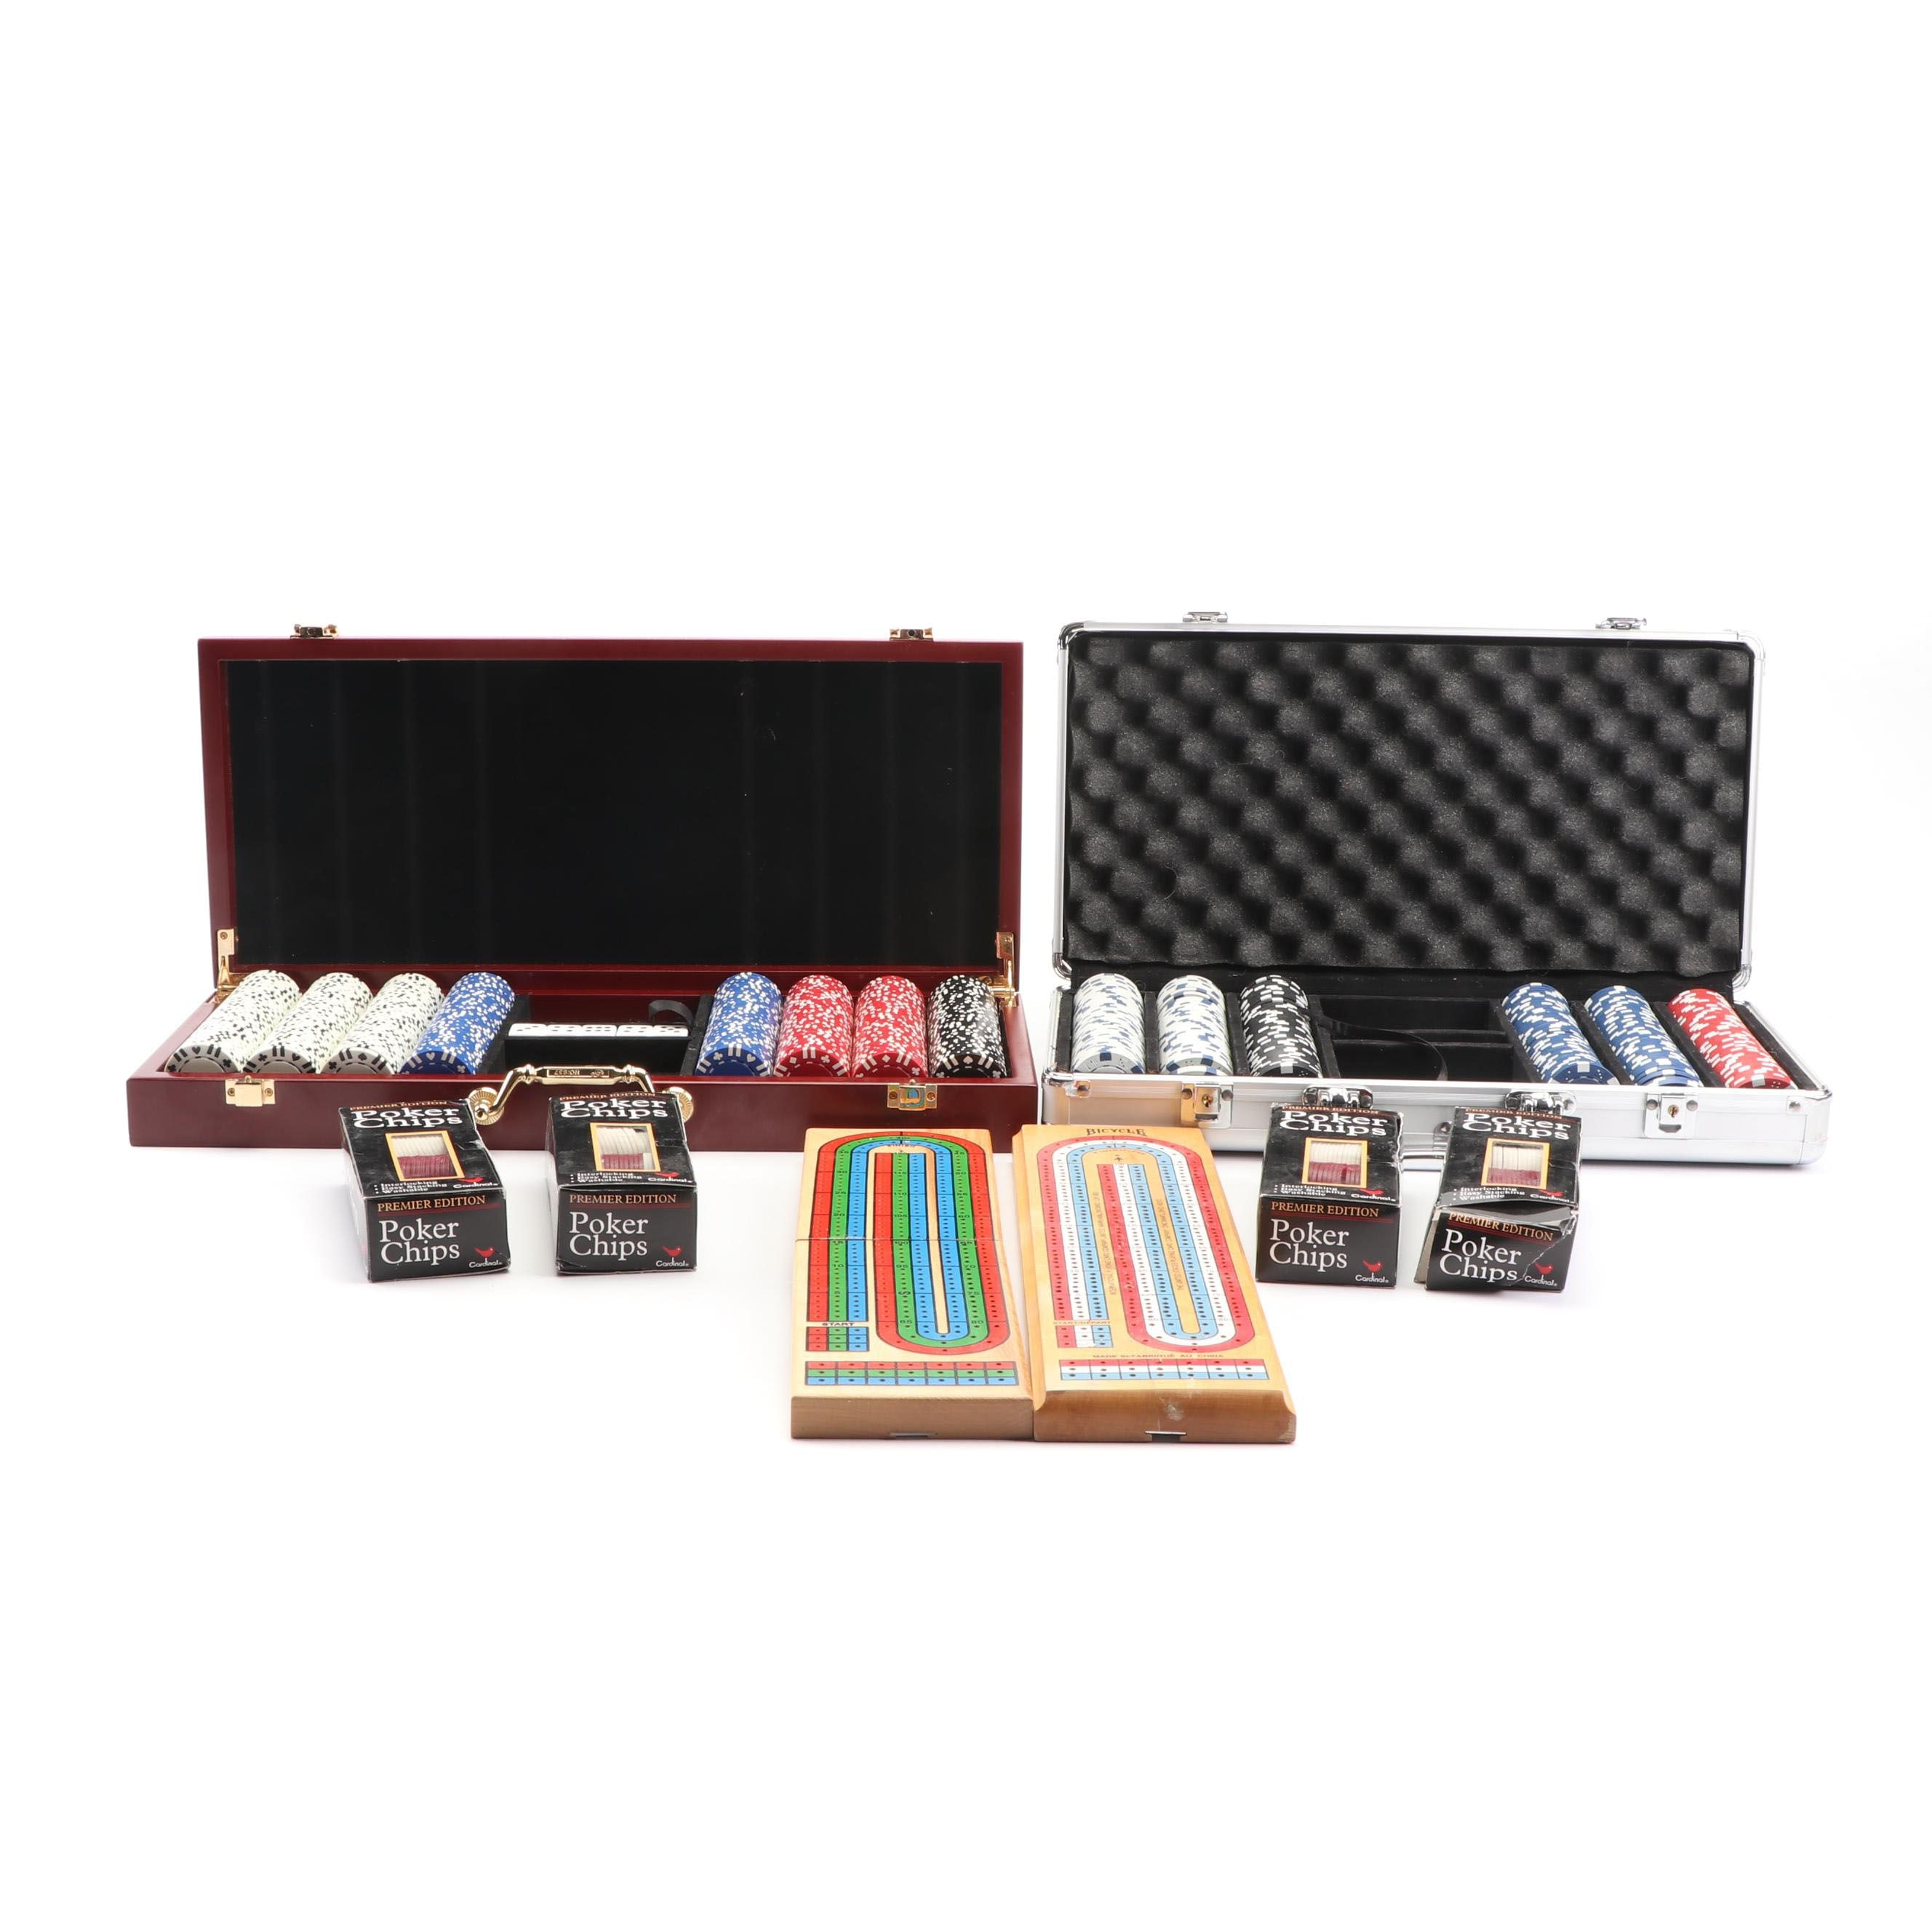 Cribbage Boards and Cases of Poker Chips